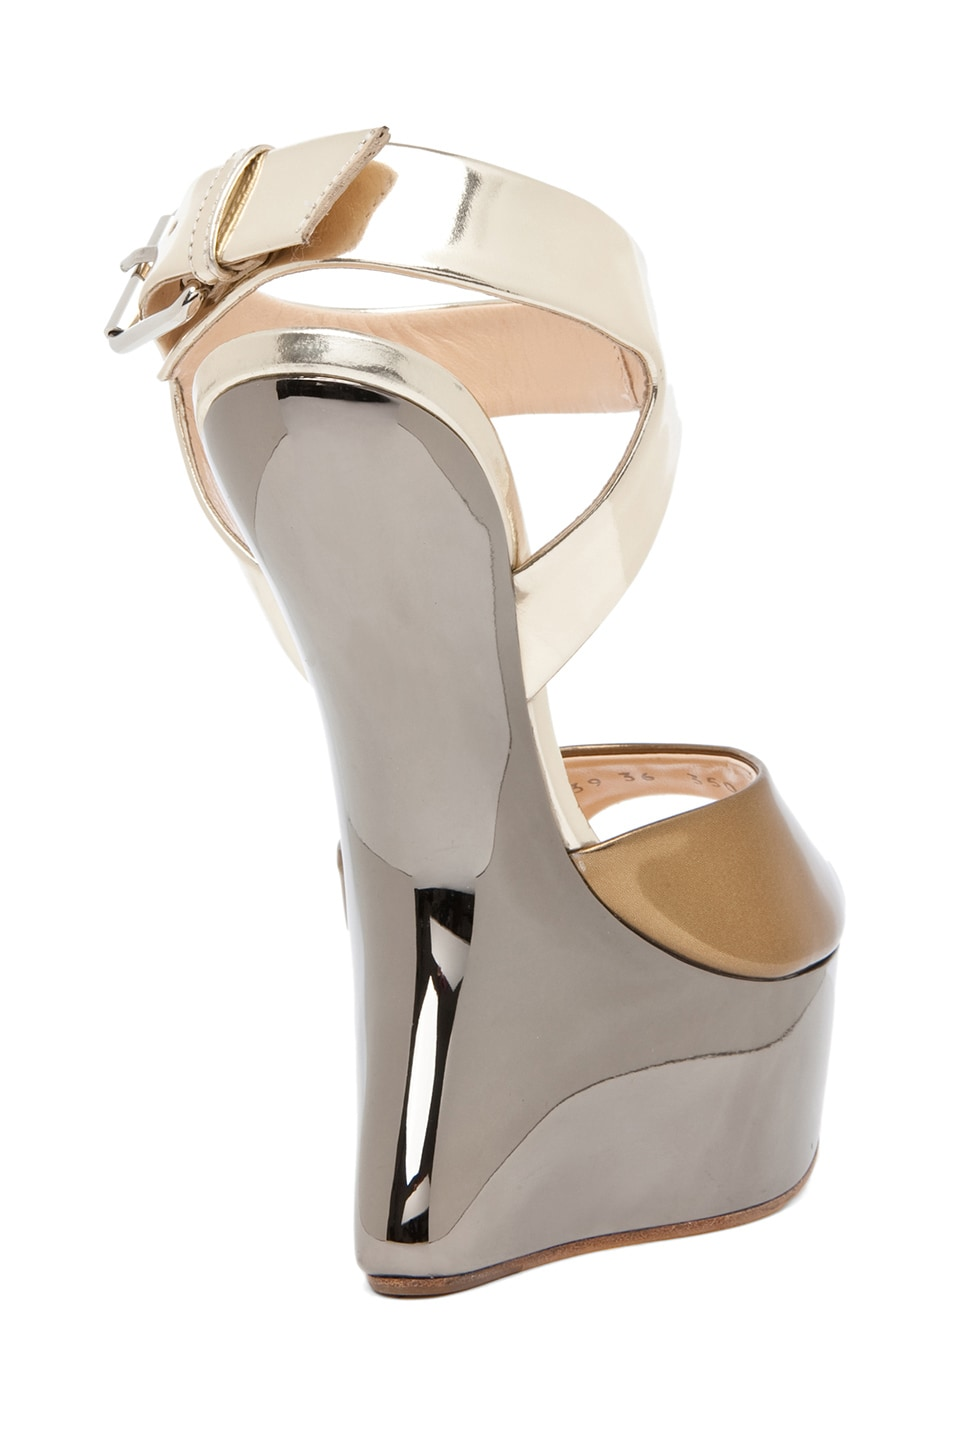 Image 3 of Giuseppe Zanotti Mirrored Wedge Sandal in Mixed Metallic